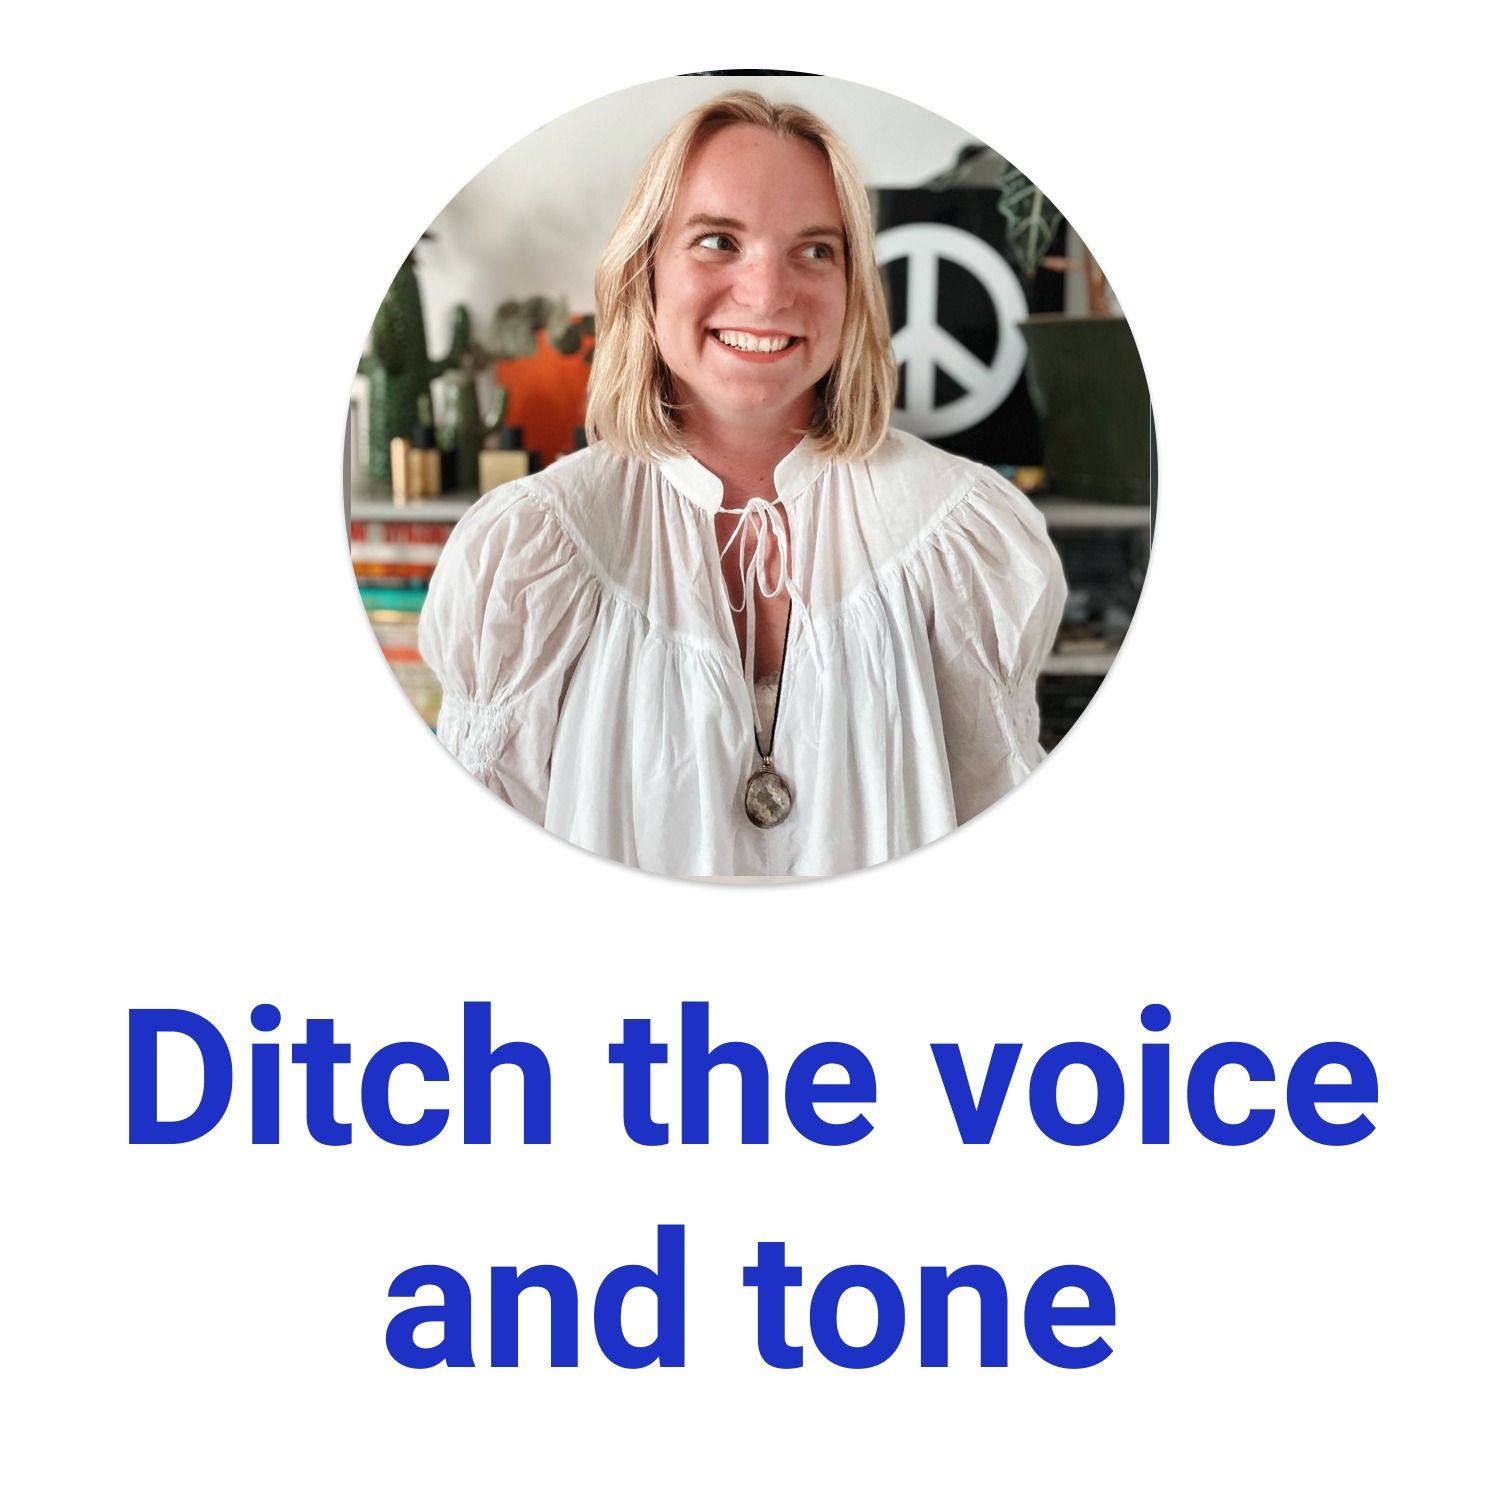 Ditch the voice and tone with Nicole Michaelis @ Spotify